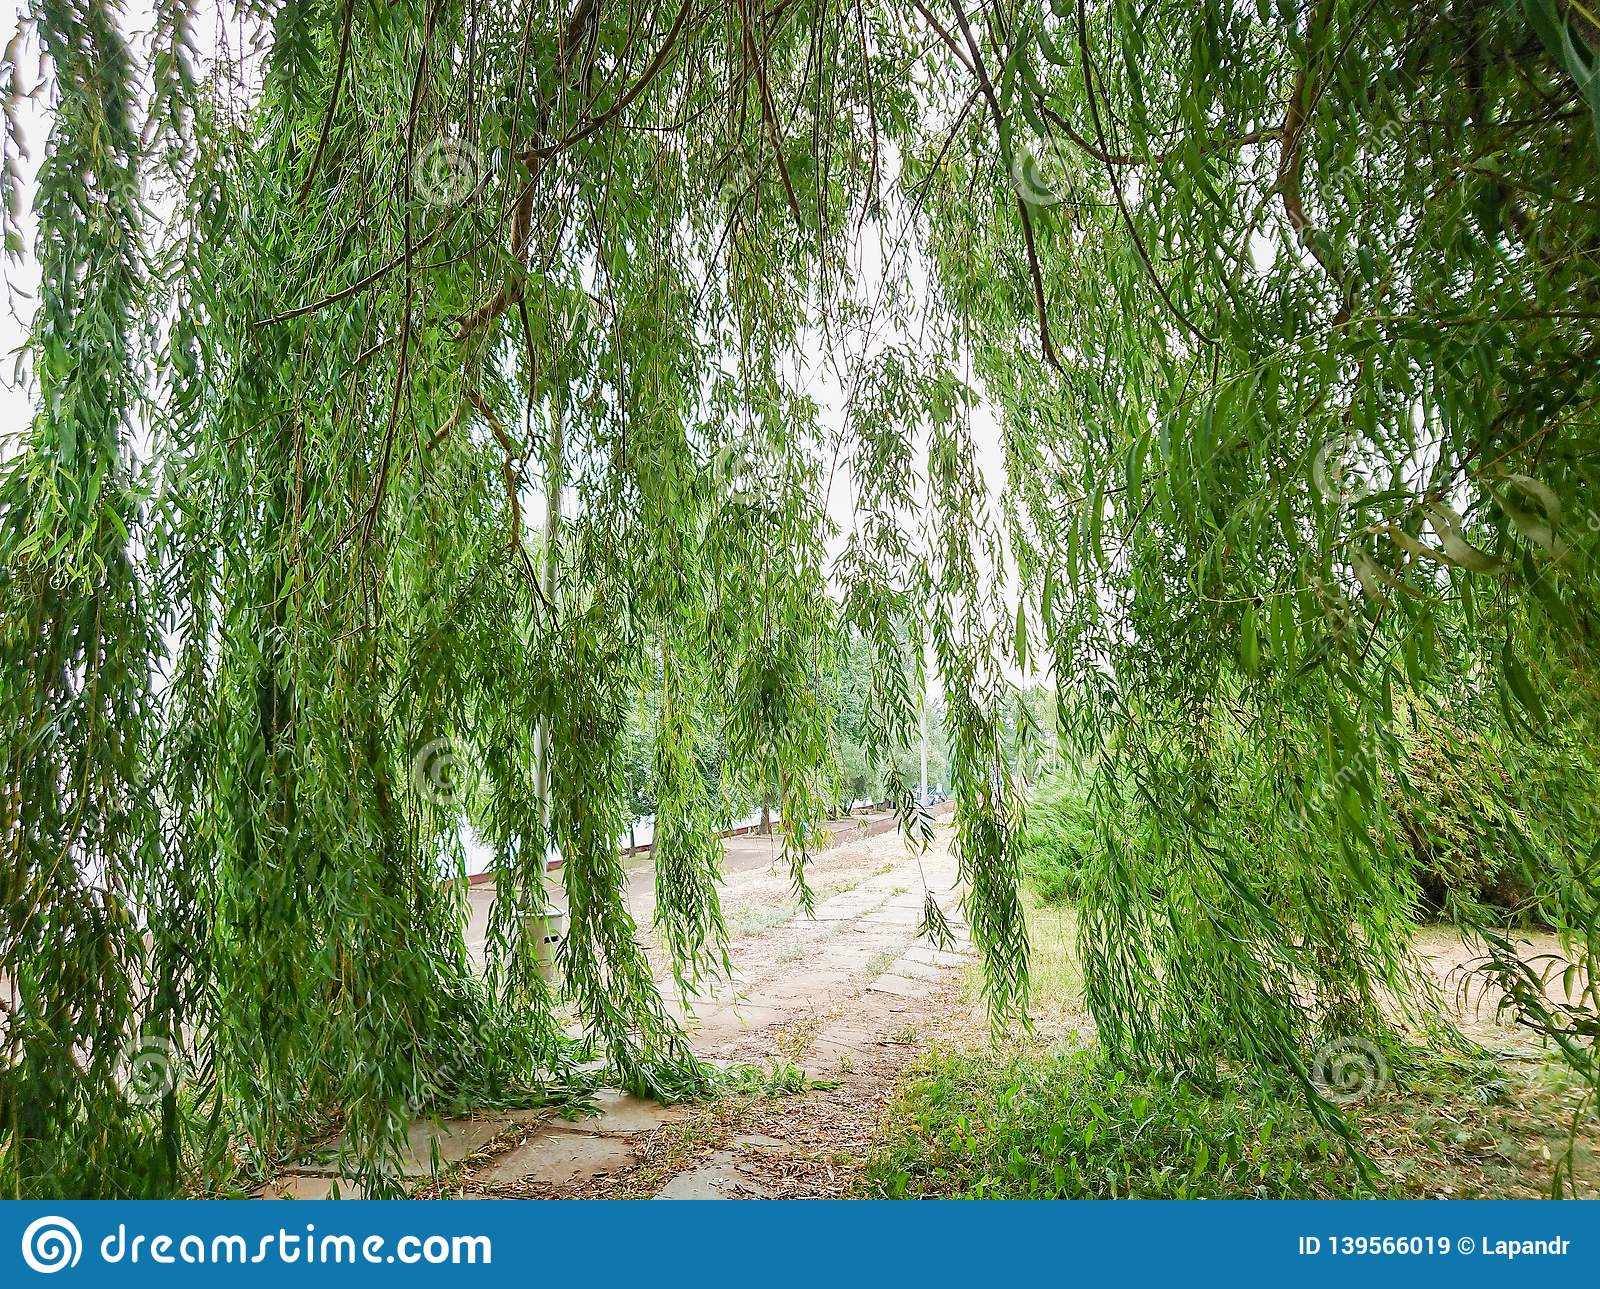 The branches of the willow tree go down to the ground. Green foliage on the tree. City park